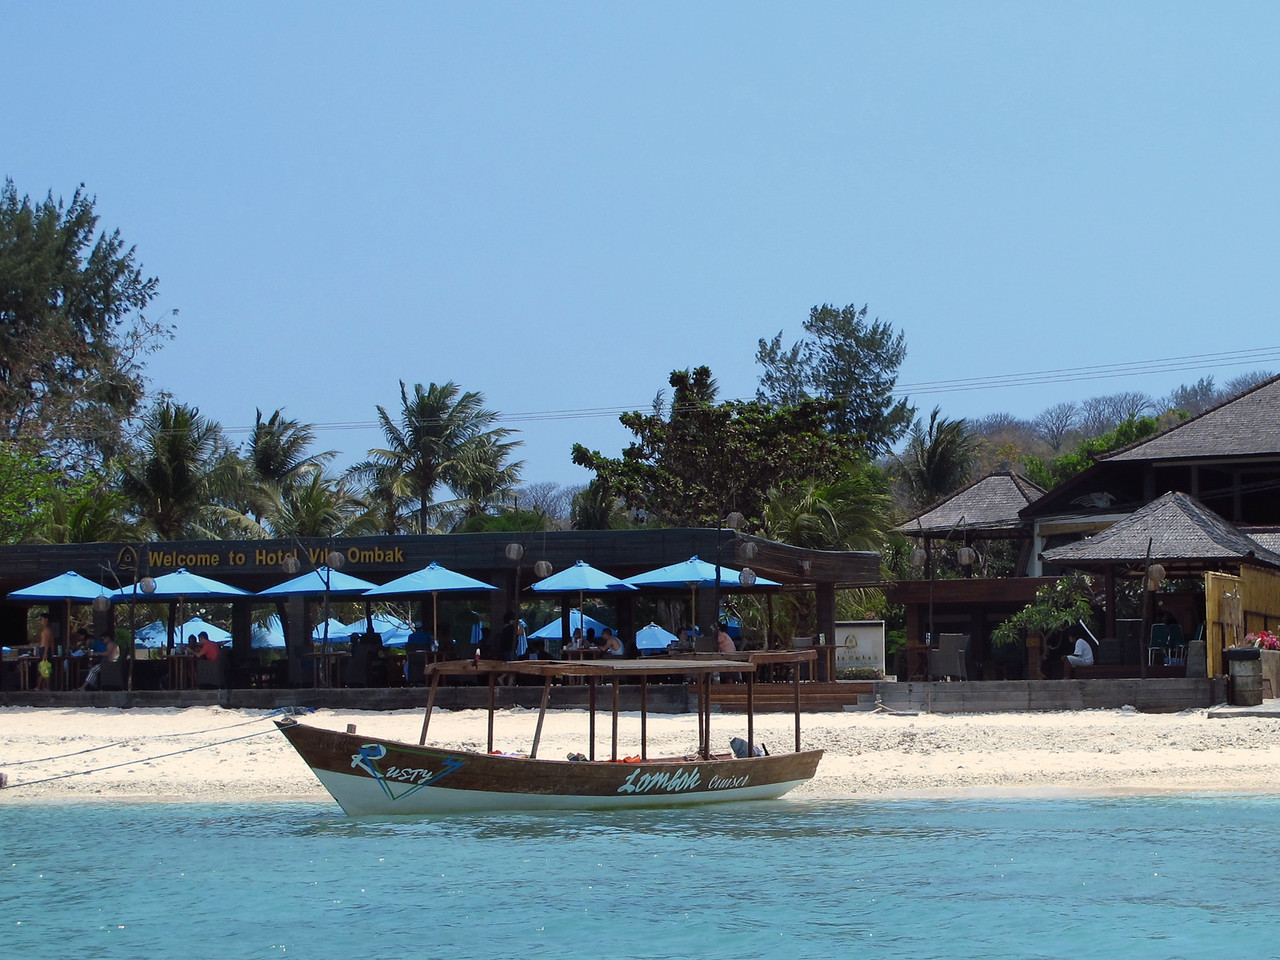 On Gili Trawangan (as well as the other two Gilis), there are no motorized vehicles. The main means of transportation are bicycles (rented by locals to tourists) and cidomo (a small horsedrawn carriage). For traveling to and from each of the Gilis, locals usually use motorized boats and speedboats